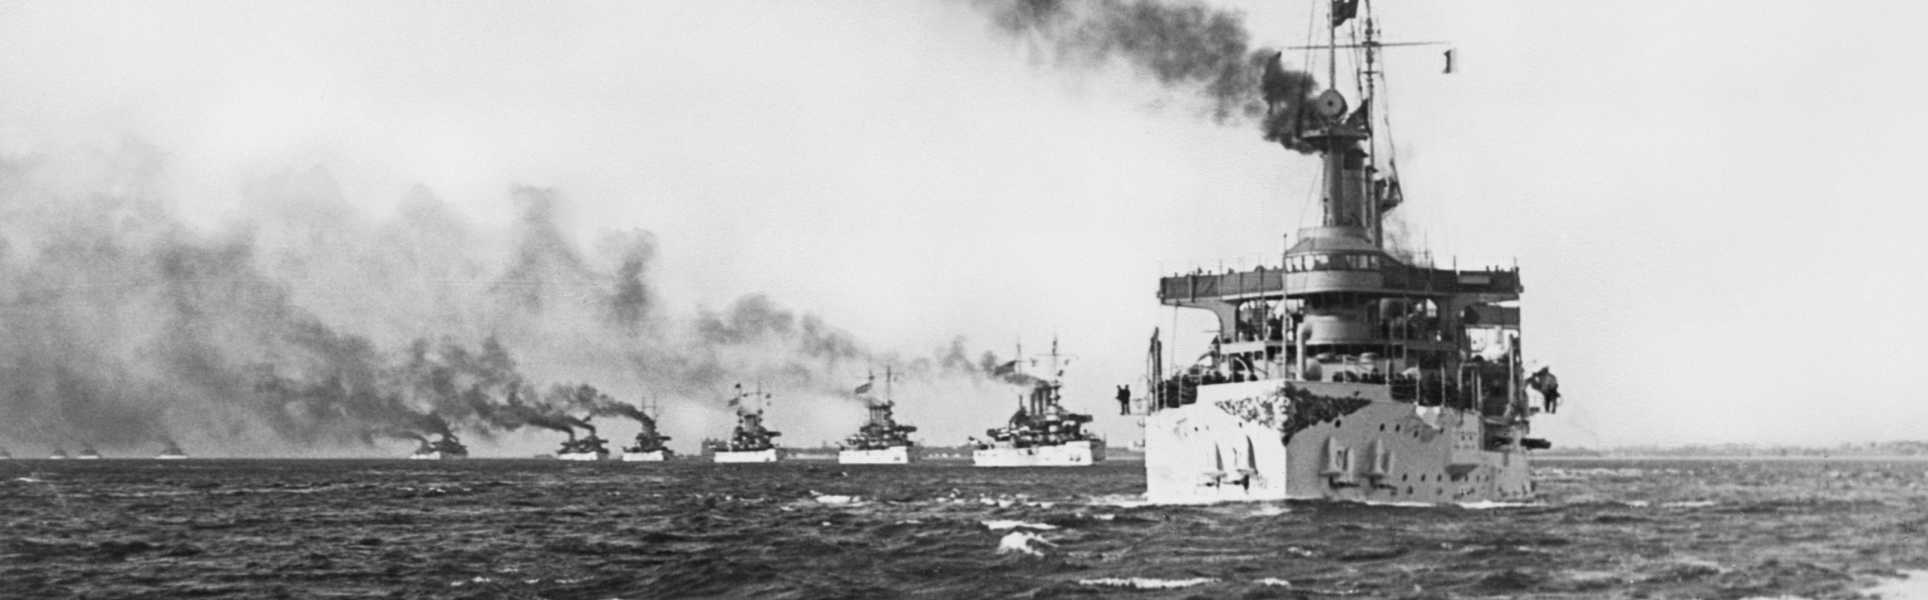 prescale Arrival of the Great White Fleet